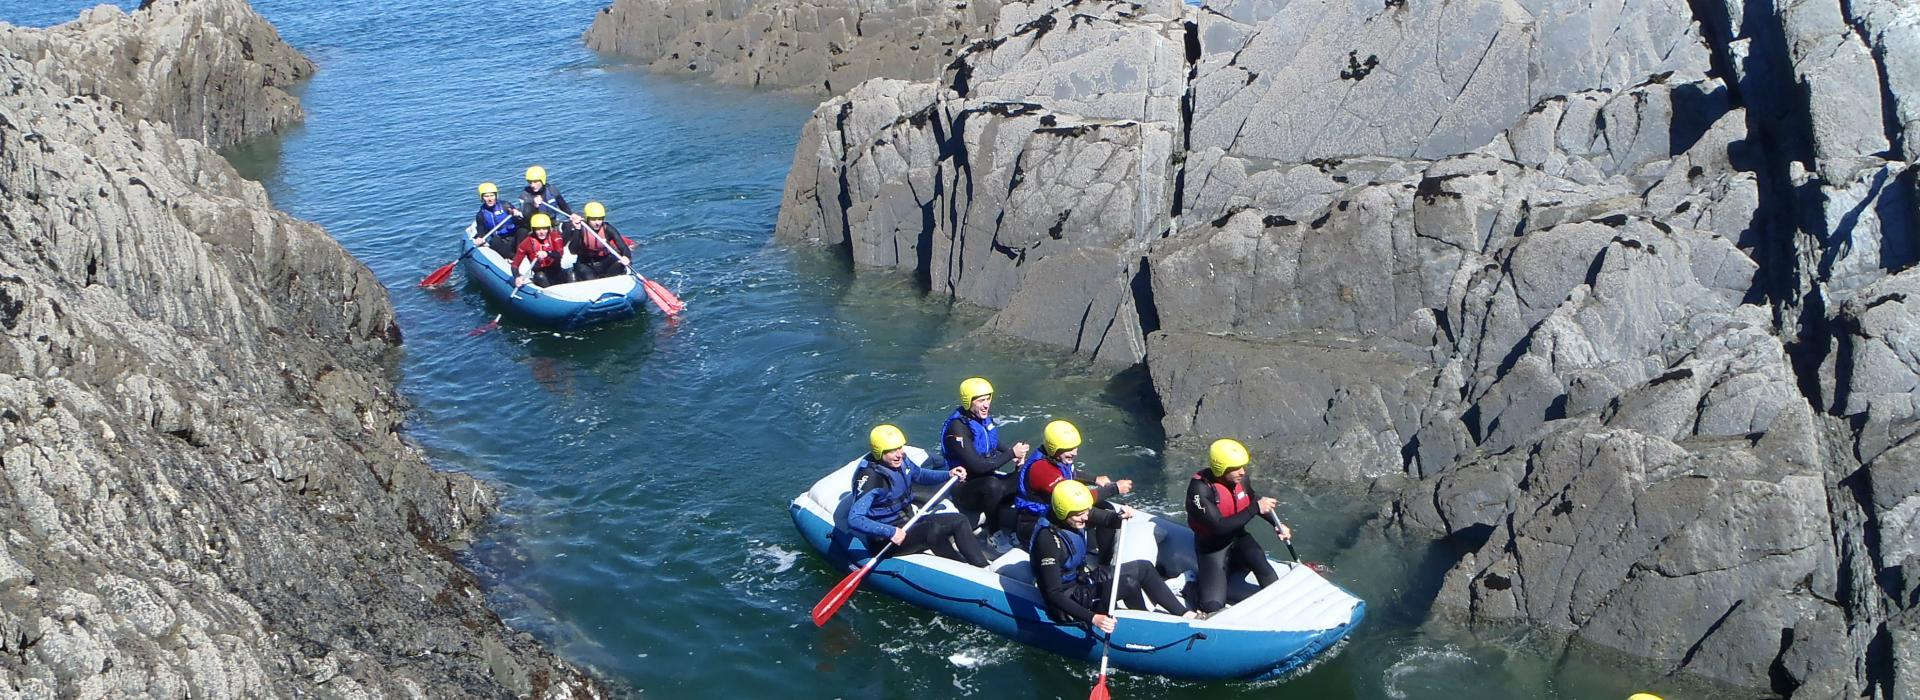 coastal rafting waterspouts centre ilfracombe north devon